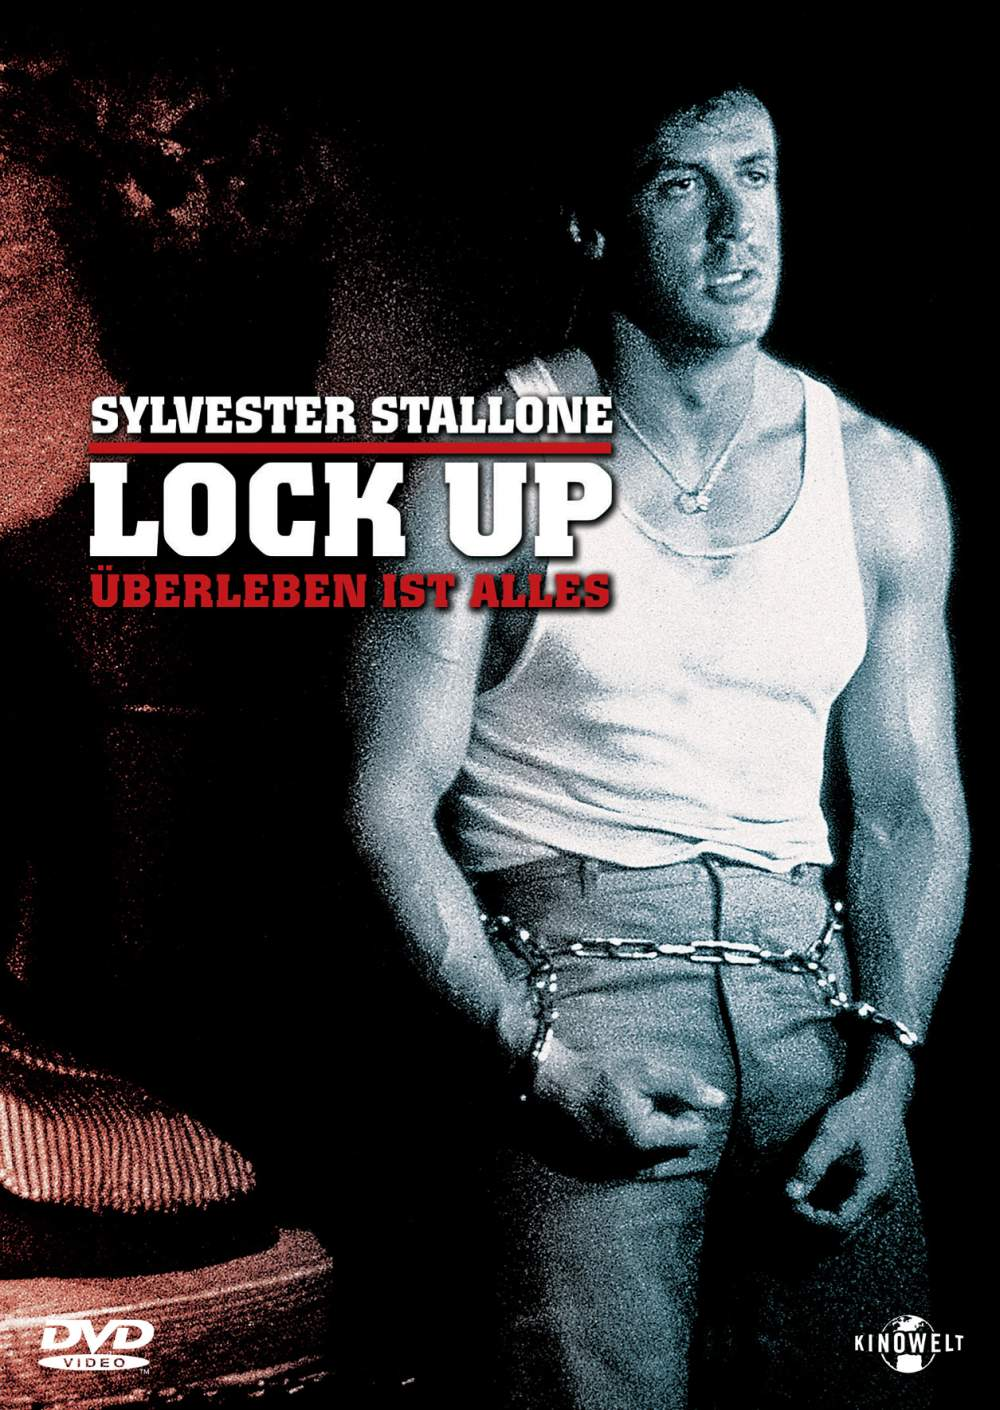 locked up Locked up is the debut single by american singer akon, taken as the lead single from his album, trouble the single was released in 2004, peaking at #8 on the.